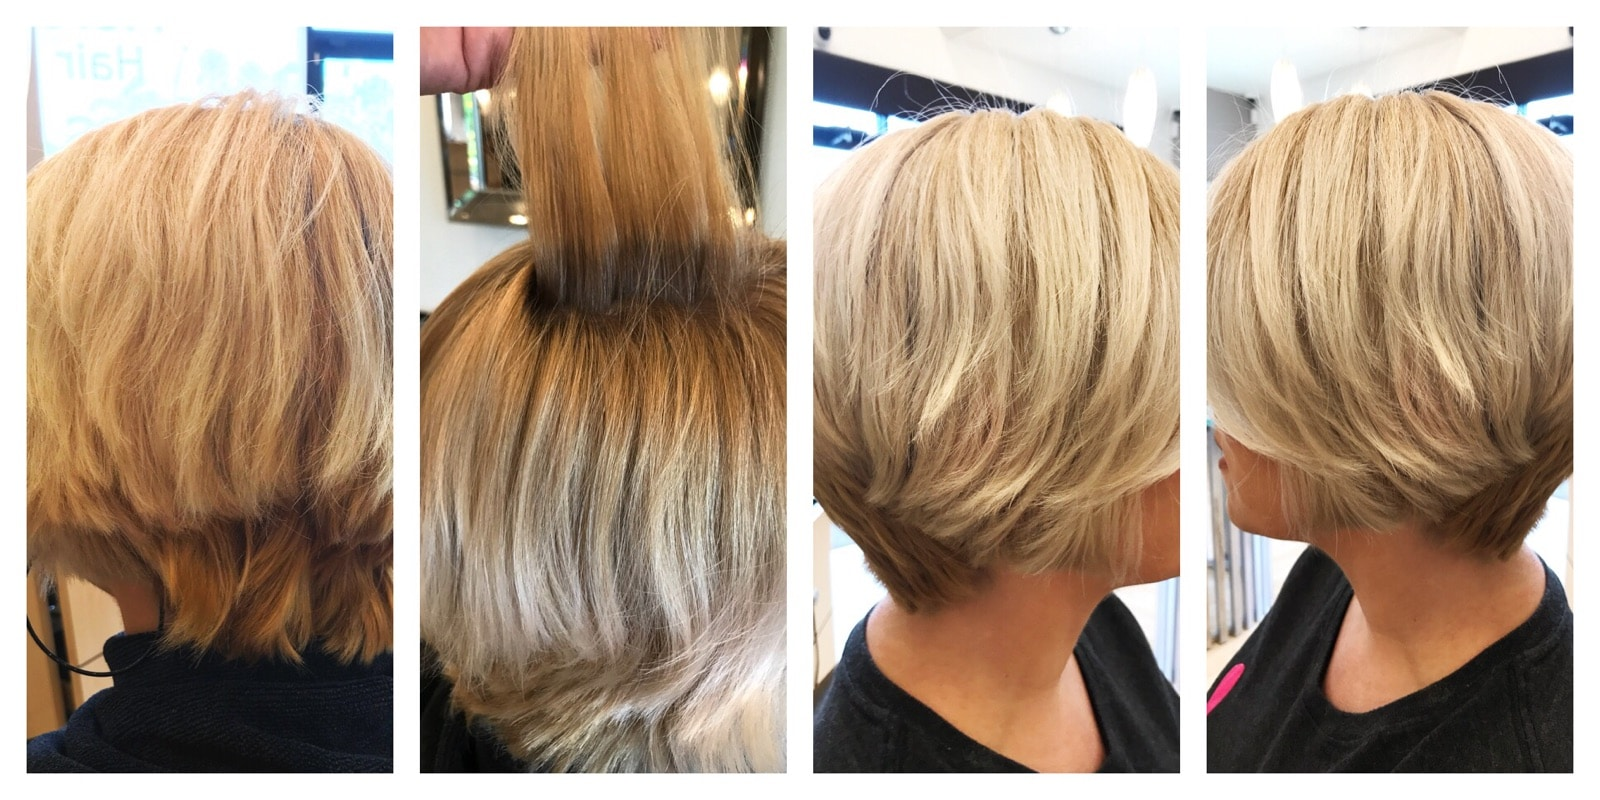 B1 Before and After Hair Makeovers in Naples FL